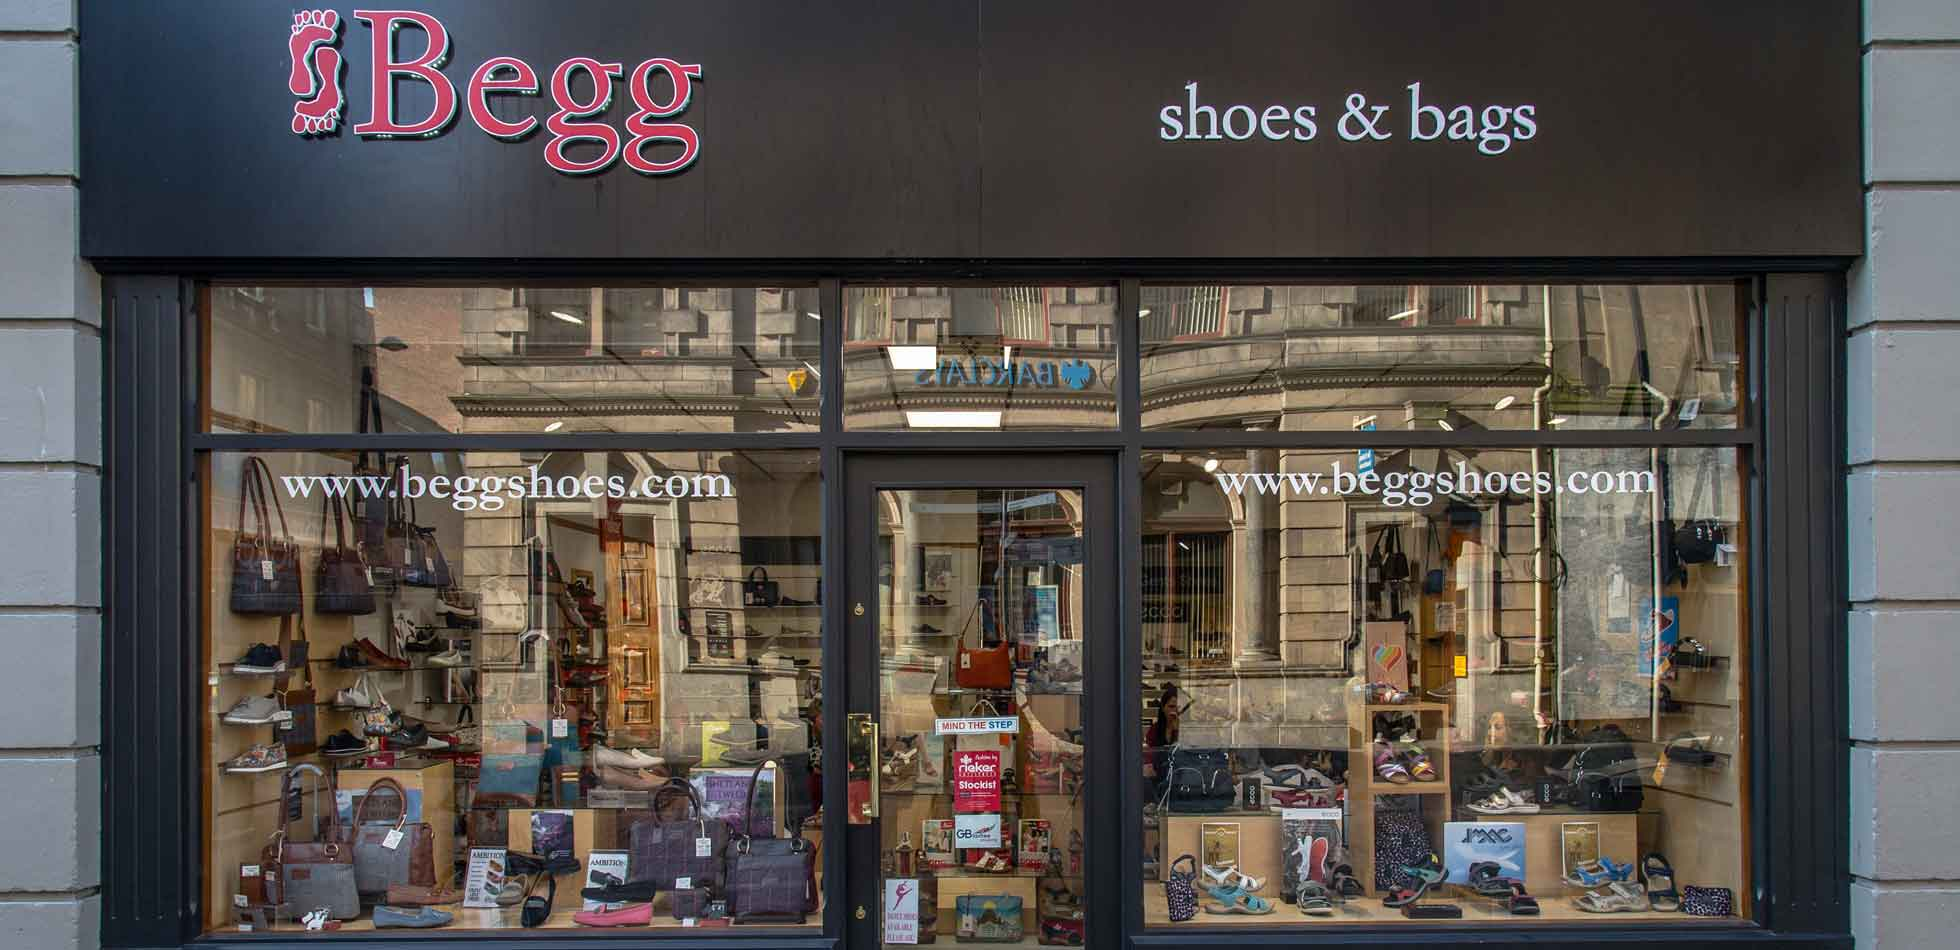 Inverness Shoe Shop Tour